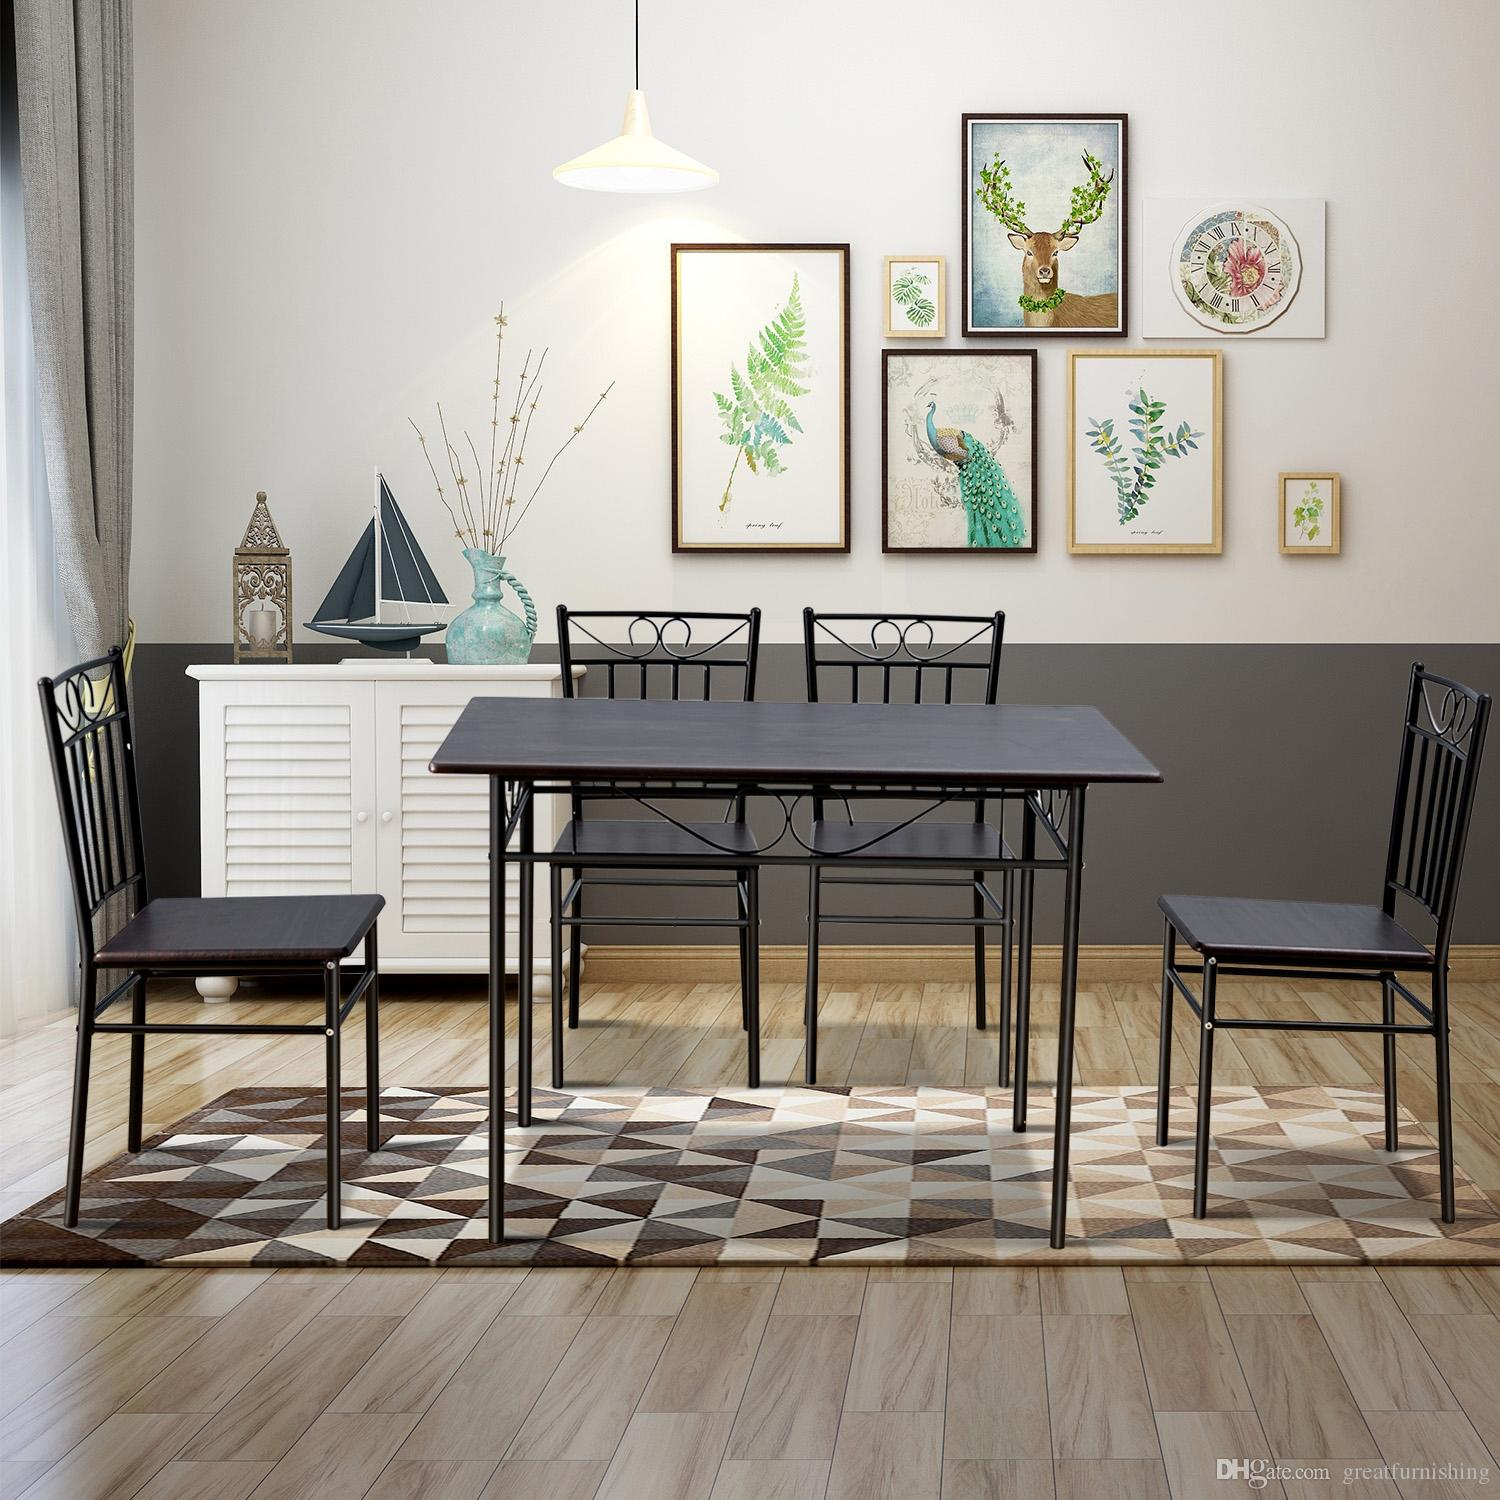 2019 Vintage Dining Table Set 4 Person Home Kitchen Table Chairs Wood Metal  Dining Room Breakfast Furniture Oak From Greatfurnishing, $193.33 | ...